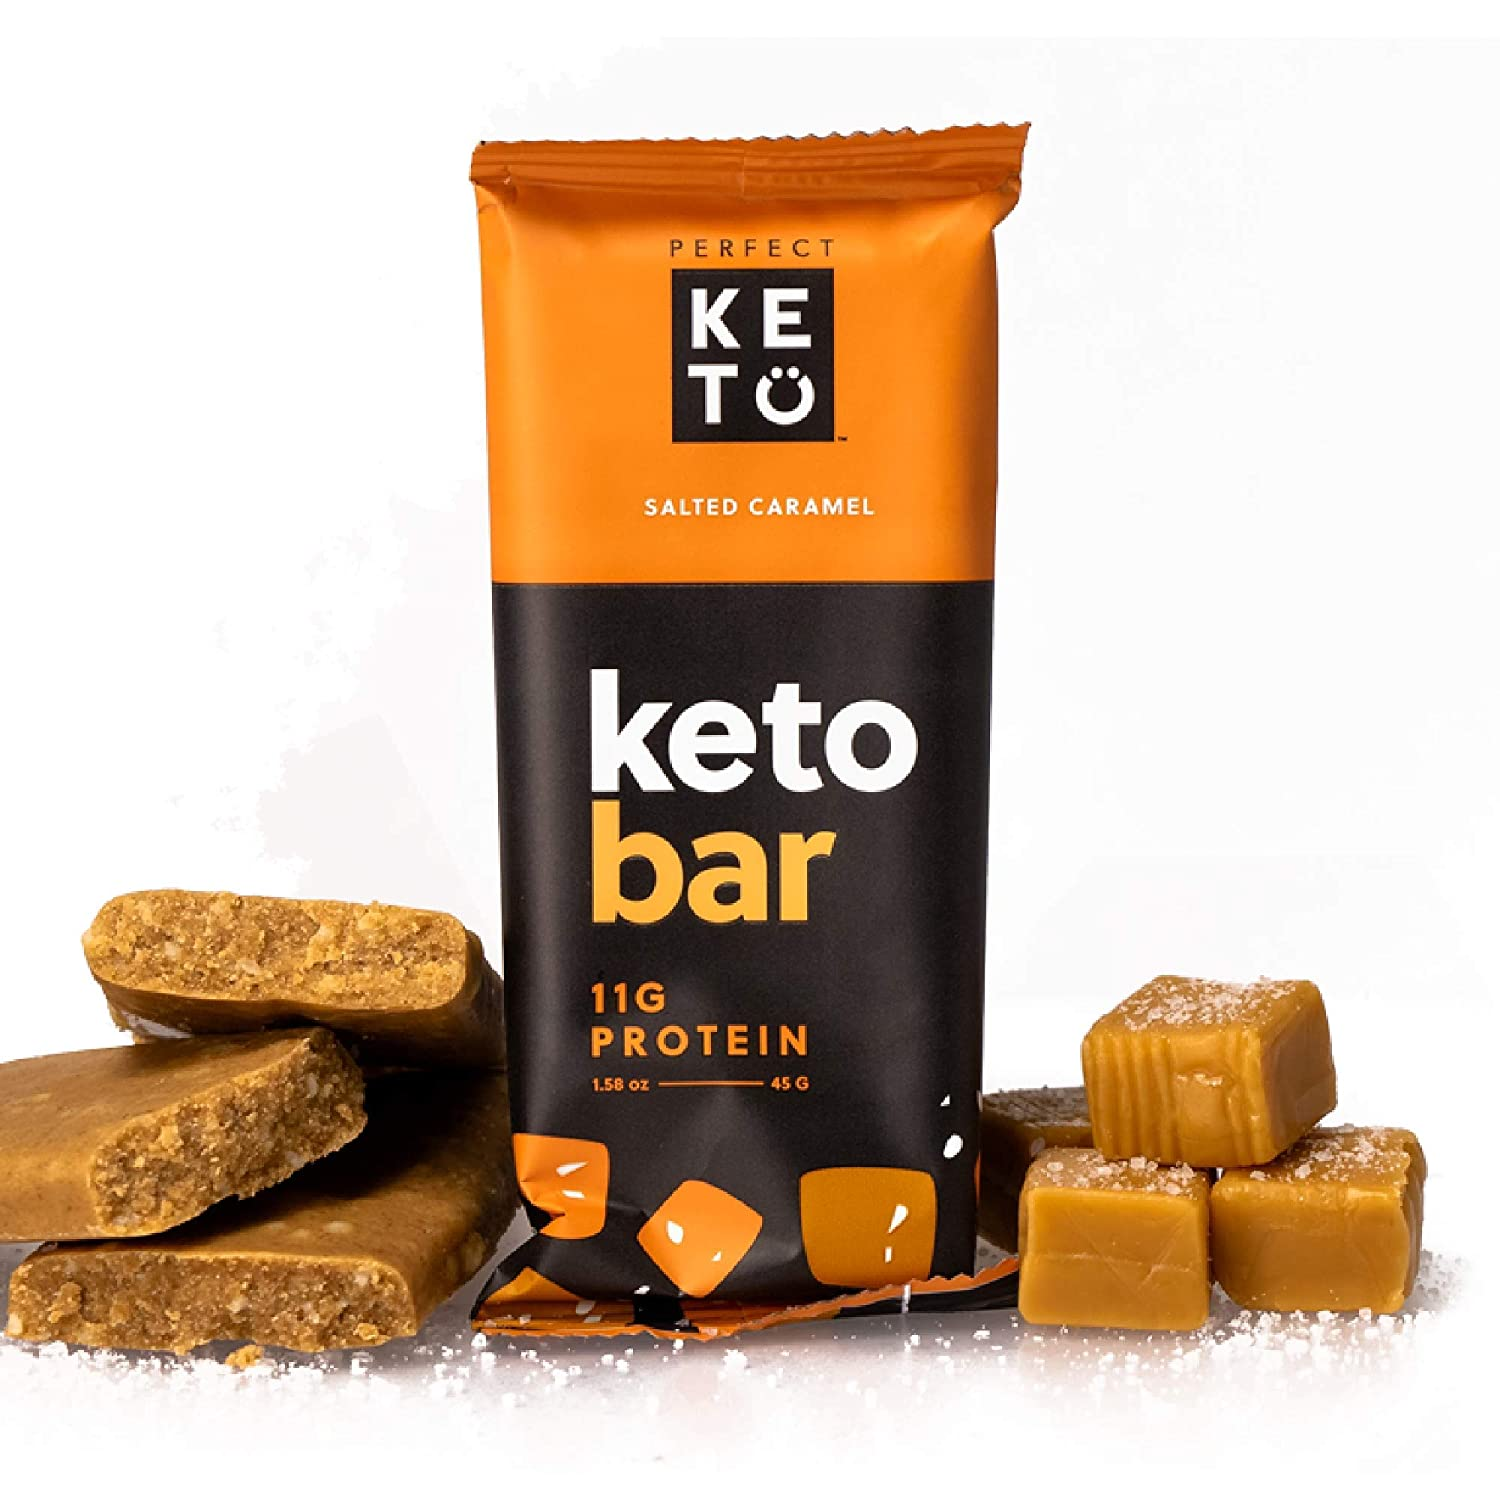 Perfect Keto Bars - The Cleanest Keto Snacks with Collagen and MCT. No  Added Sugar, Keto Diet Friendly - 3g Net Carbs, 19g Fat,11g protein - Keto  Diet Food Dessert (Salted Caramel,